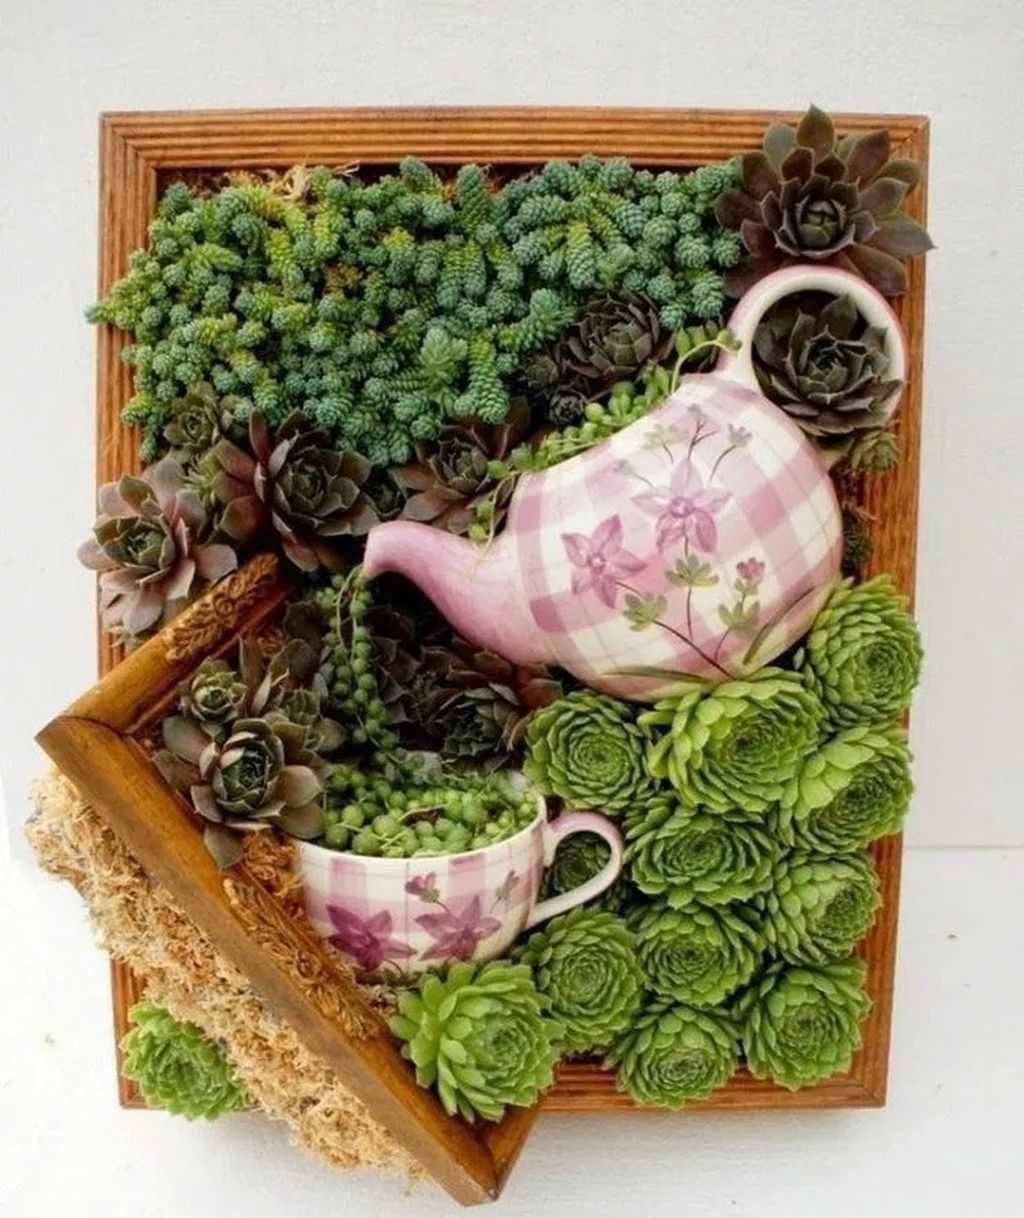 Inspiring Diy Teacup Mini Garden Ideas To Add Bliss To Your Home 25